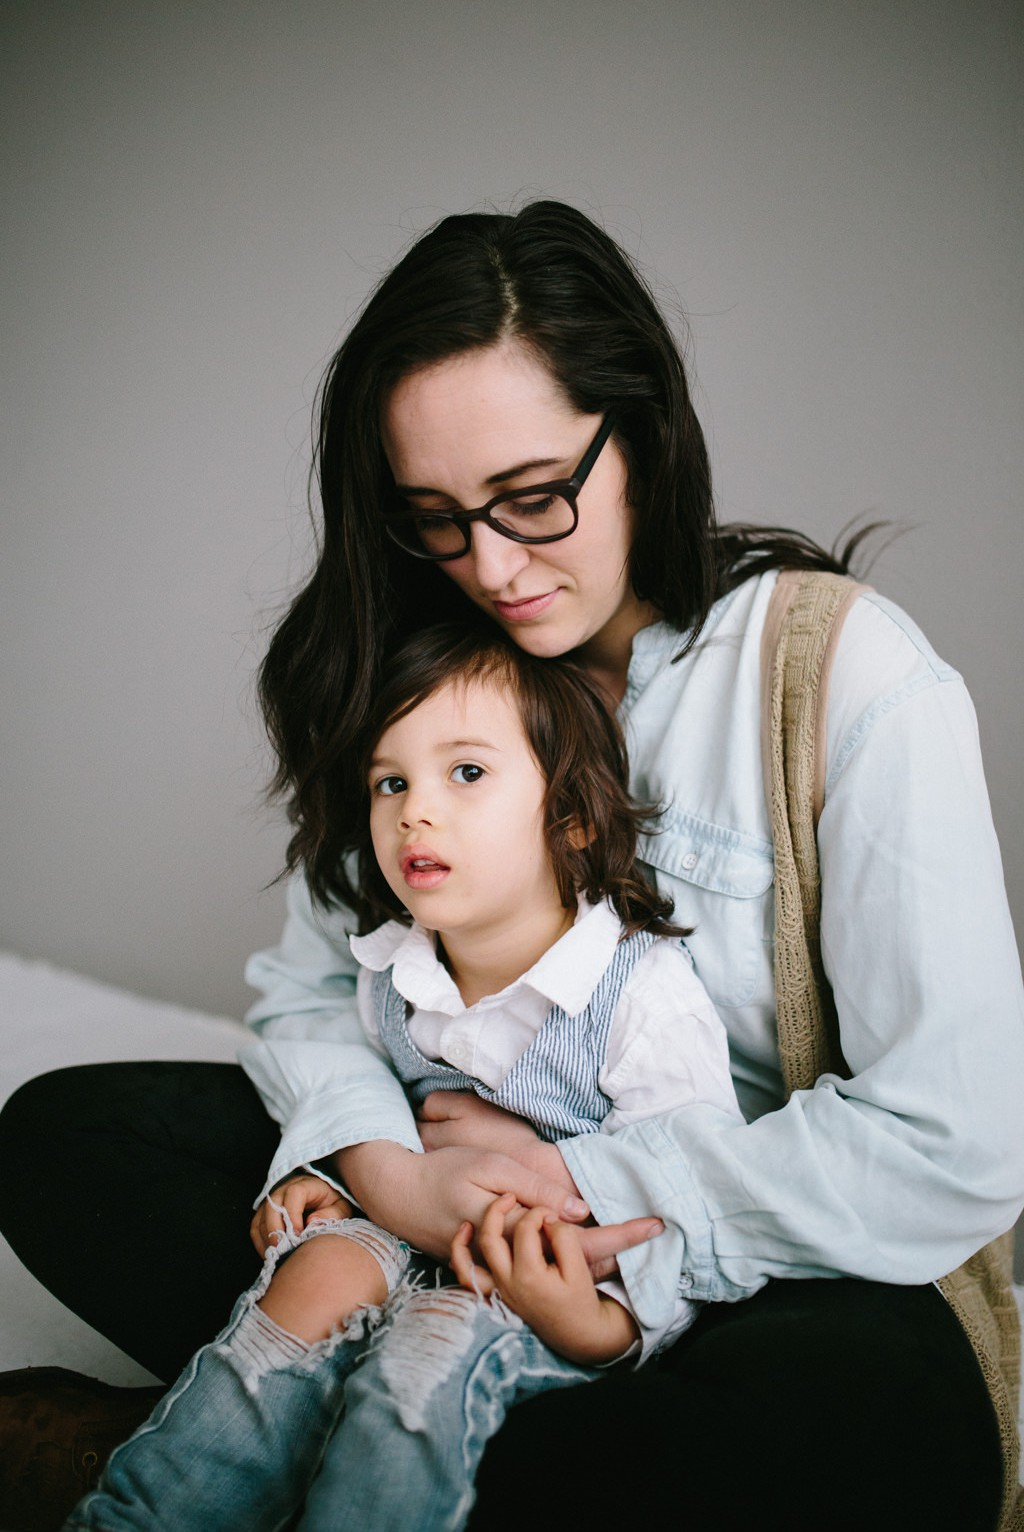 julia kinnunen photography, seattle, girl boss, lady boss, generations, studio sessions,  family portraits, kids, family photos, mama and baby